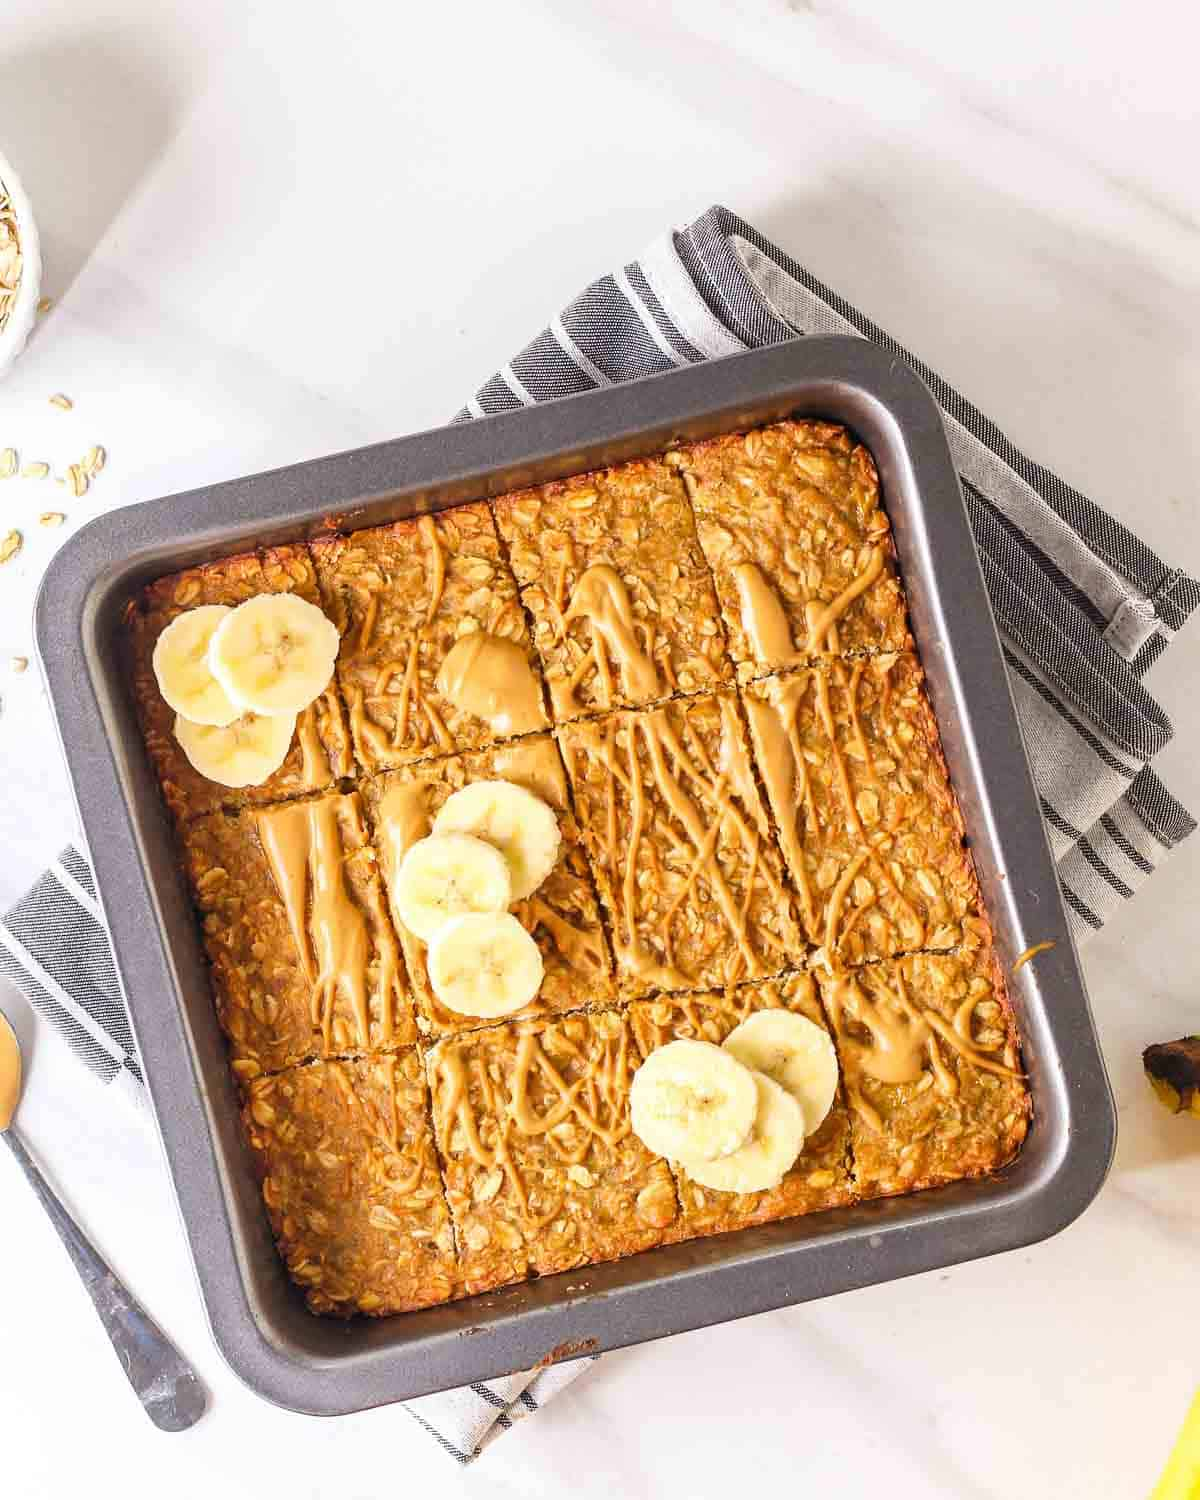 A tray of banana oatmeal bars topped with peanut butter and banana slices.